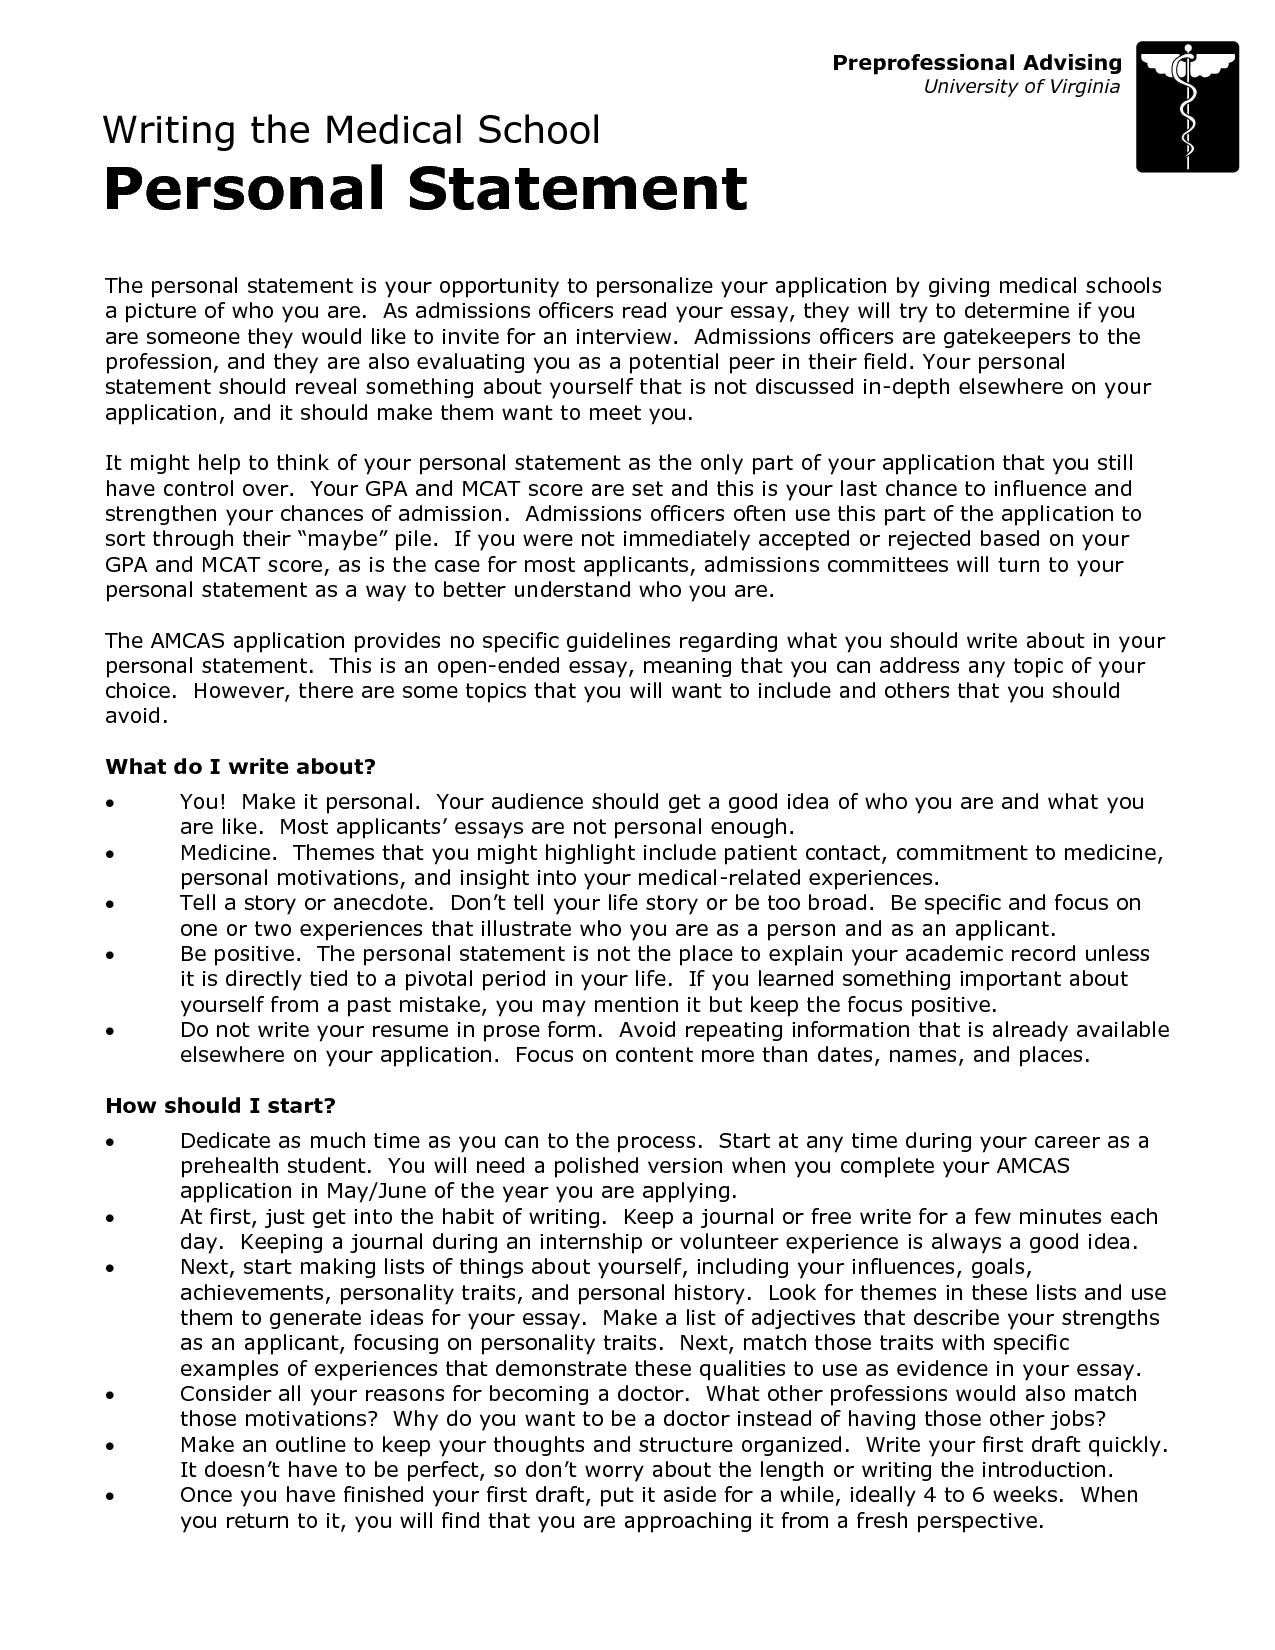 writing good personal essay We explain how to attack the uc personal statements, with strategies on writing great essays for all 8 prompts  all good personal essays deal with emotions.